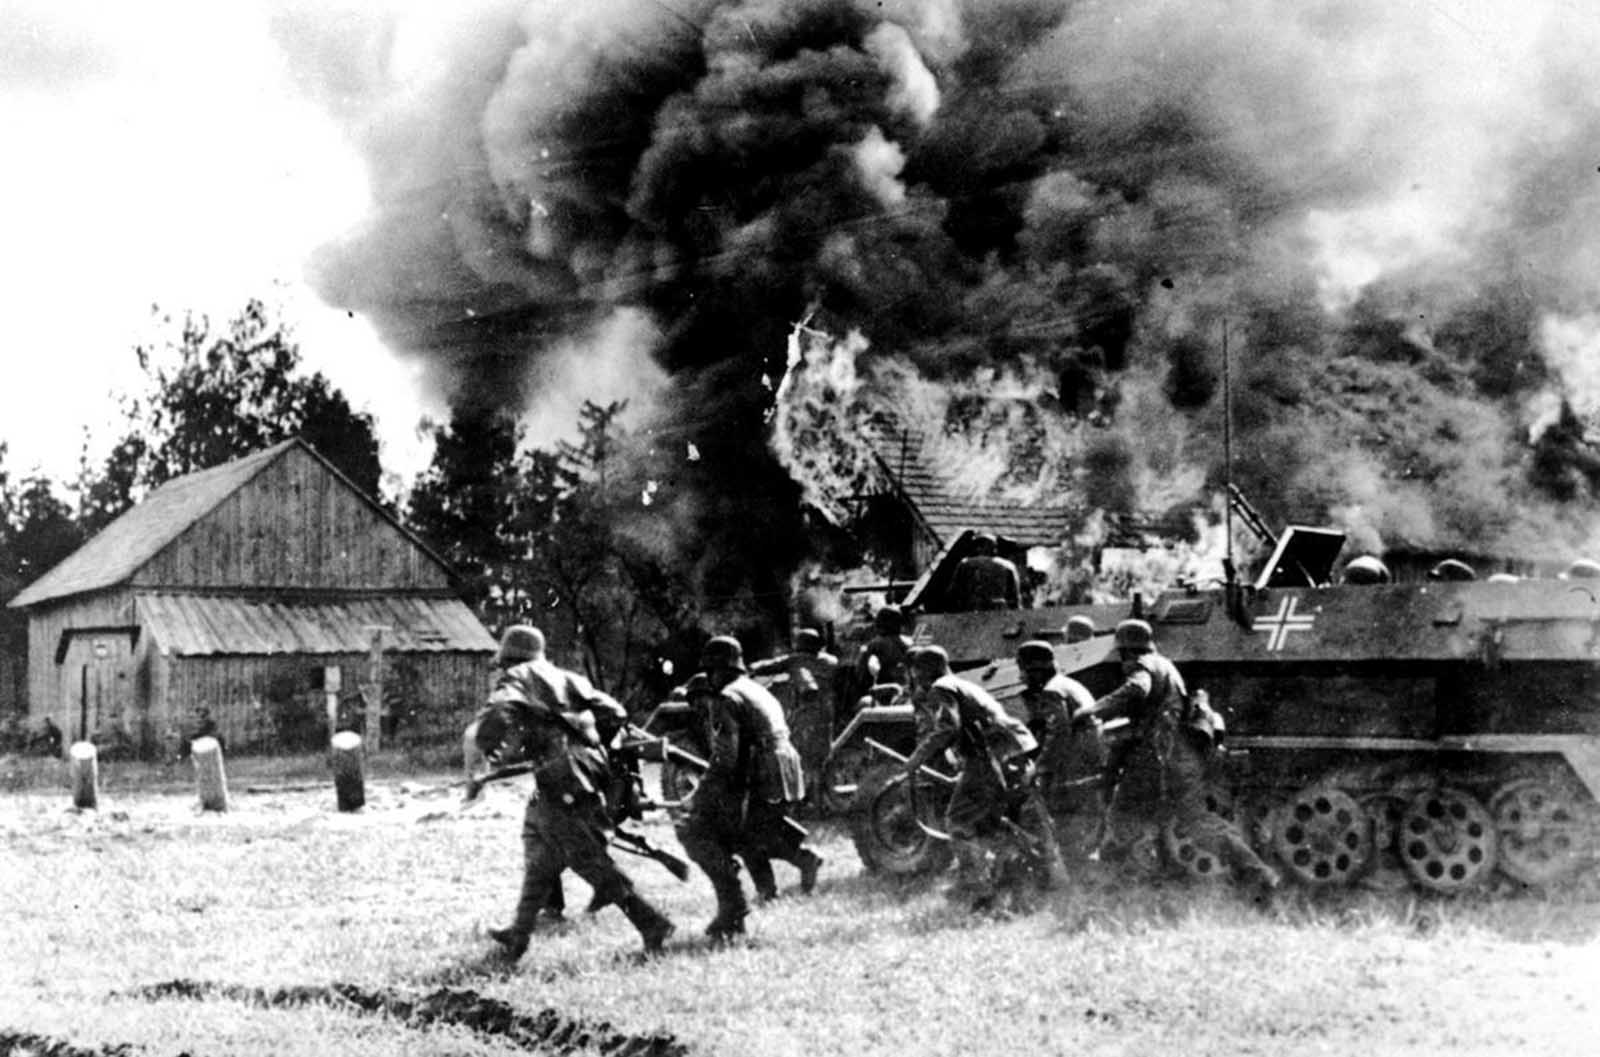 German soldiers, supported by armored personnel carriers, move into a burning Russian village at an unknown location during the German invasion of the Soviet Union, on June 26, 1941.